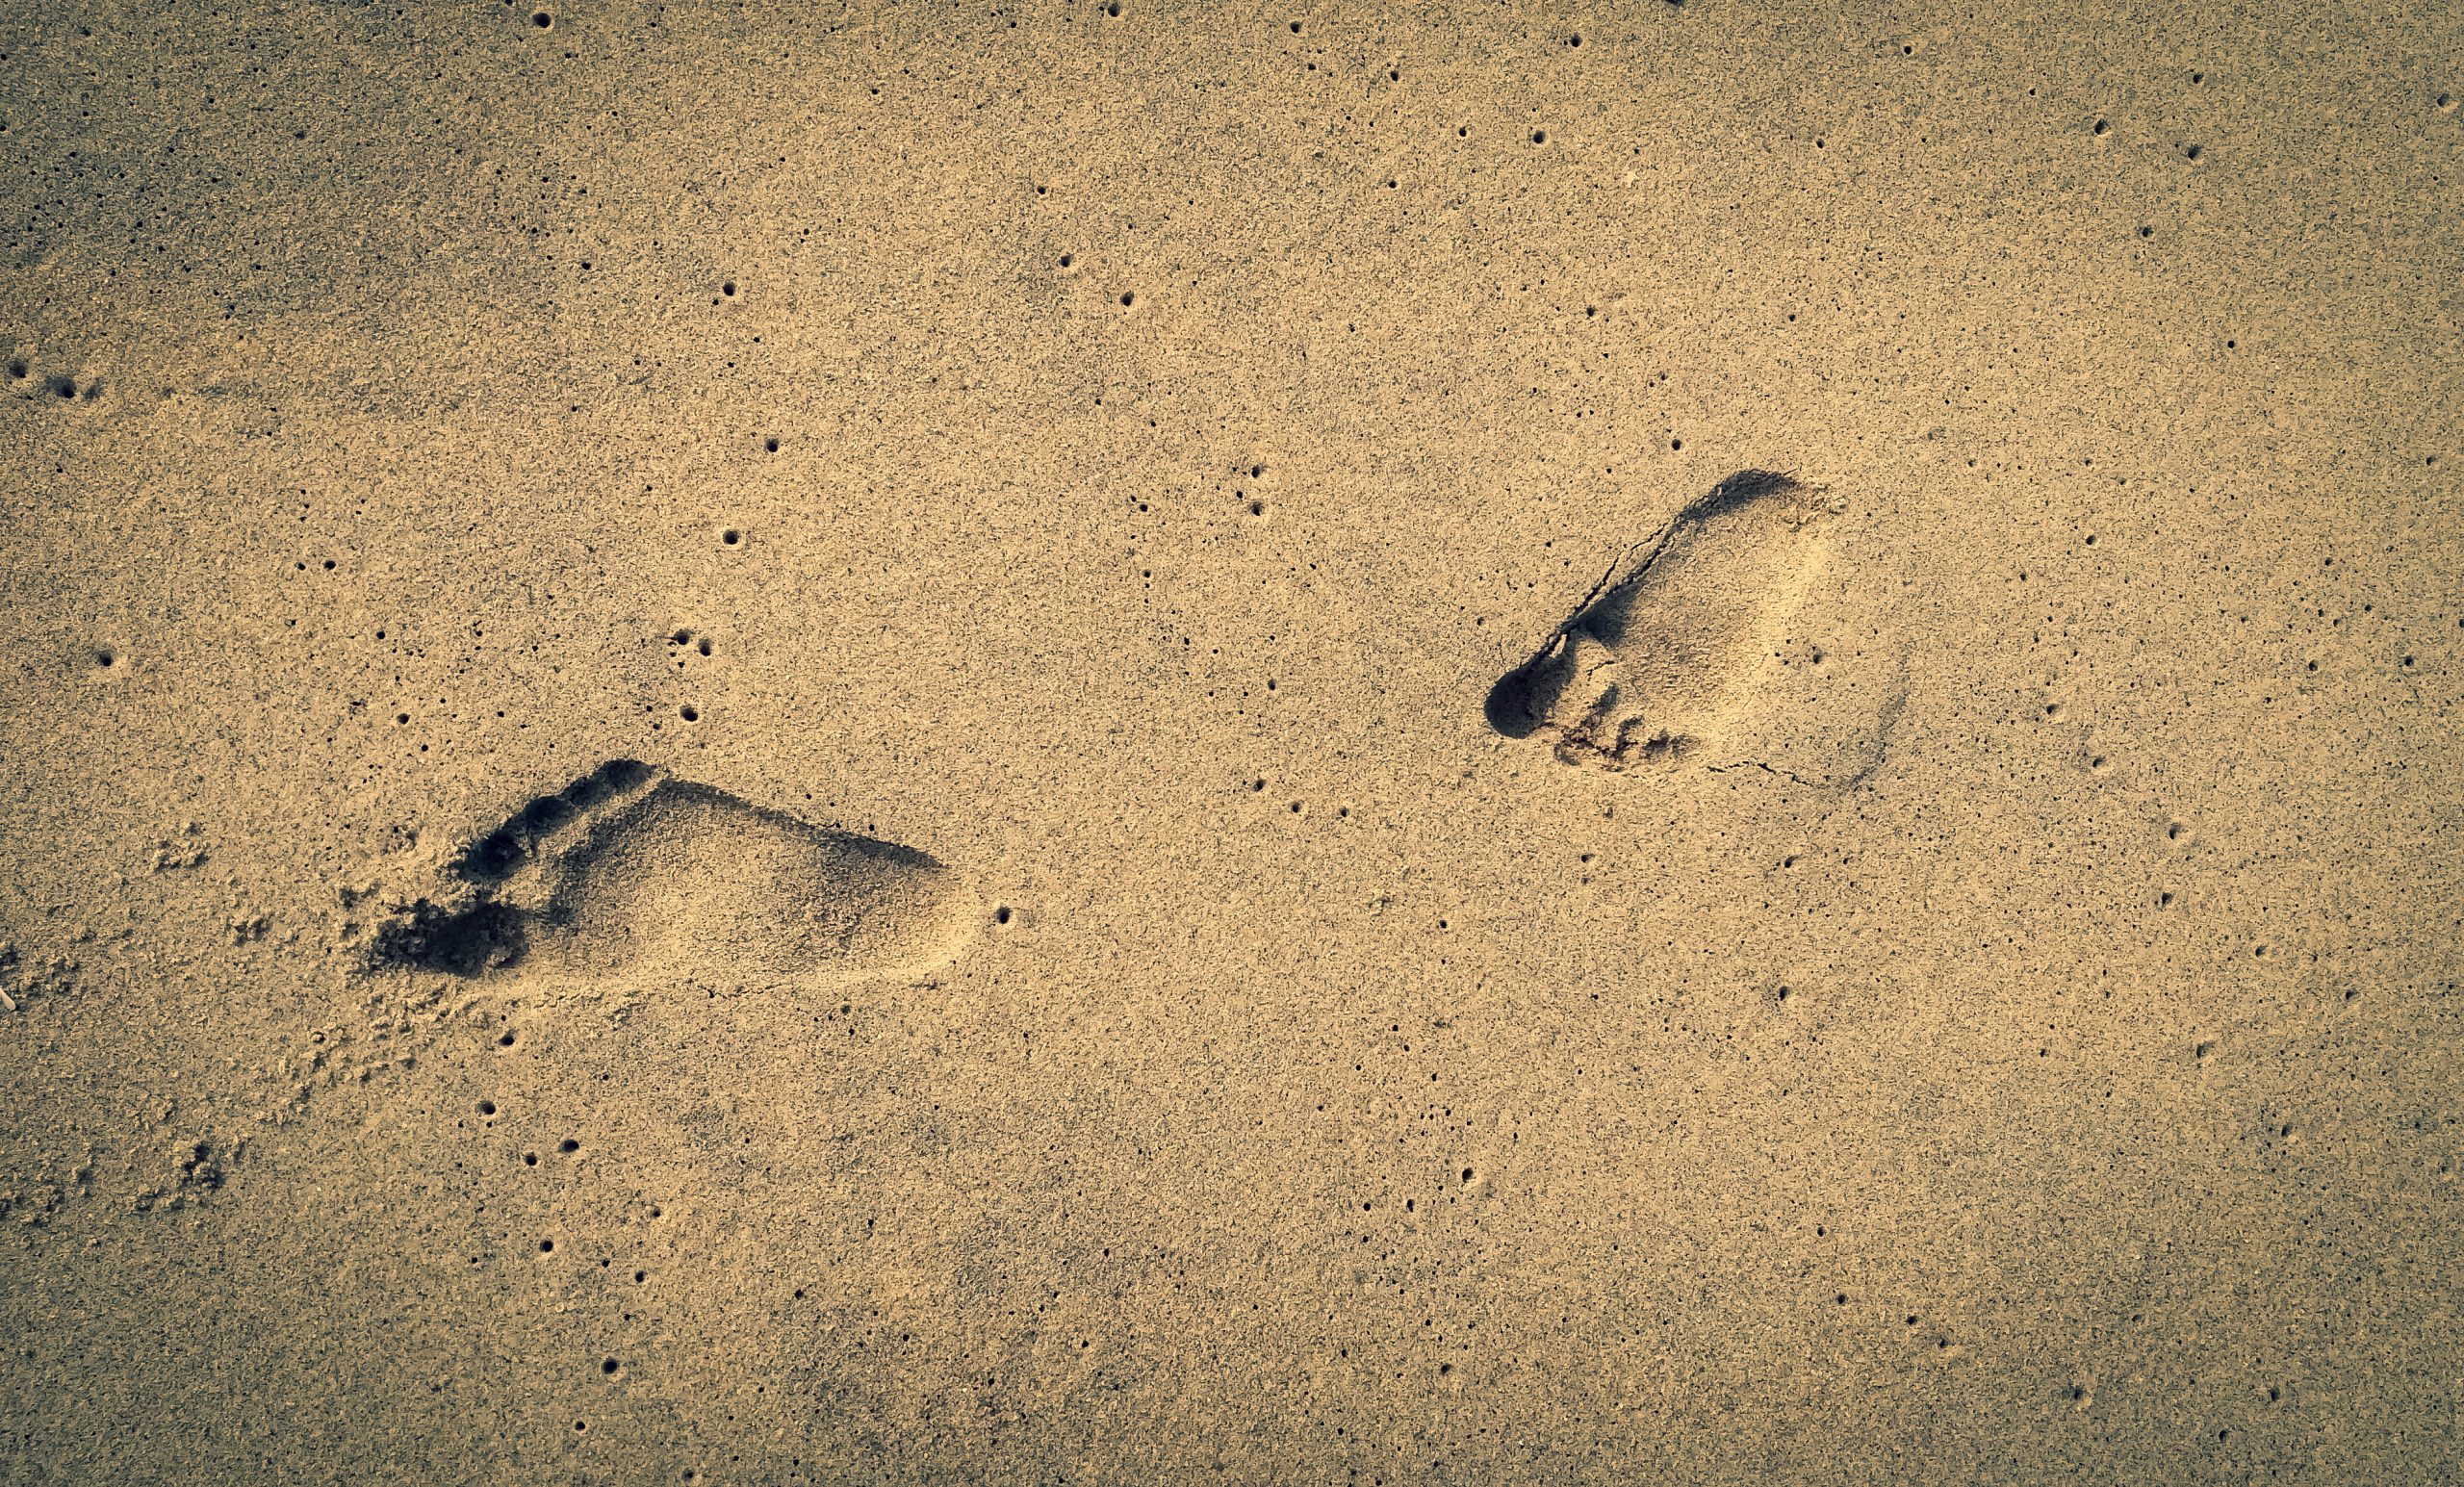 Foot marks on a beach